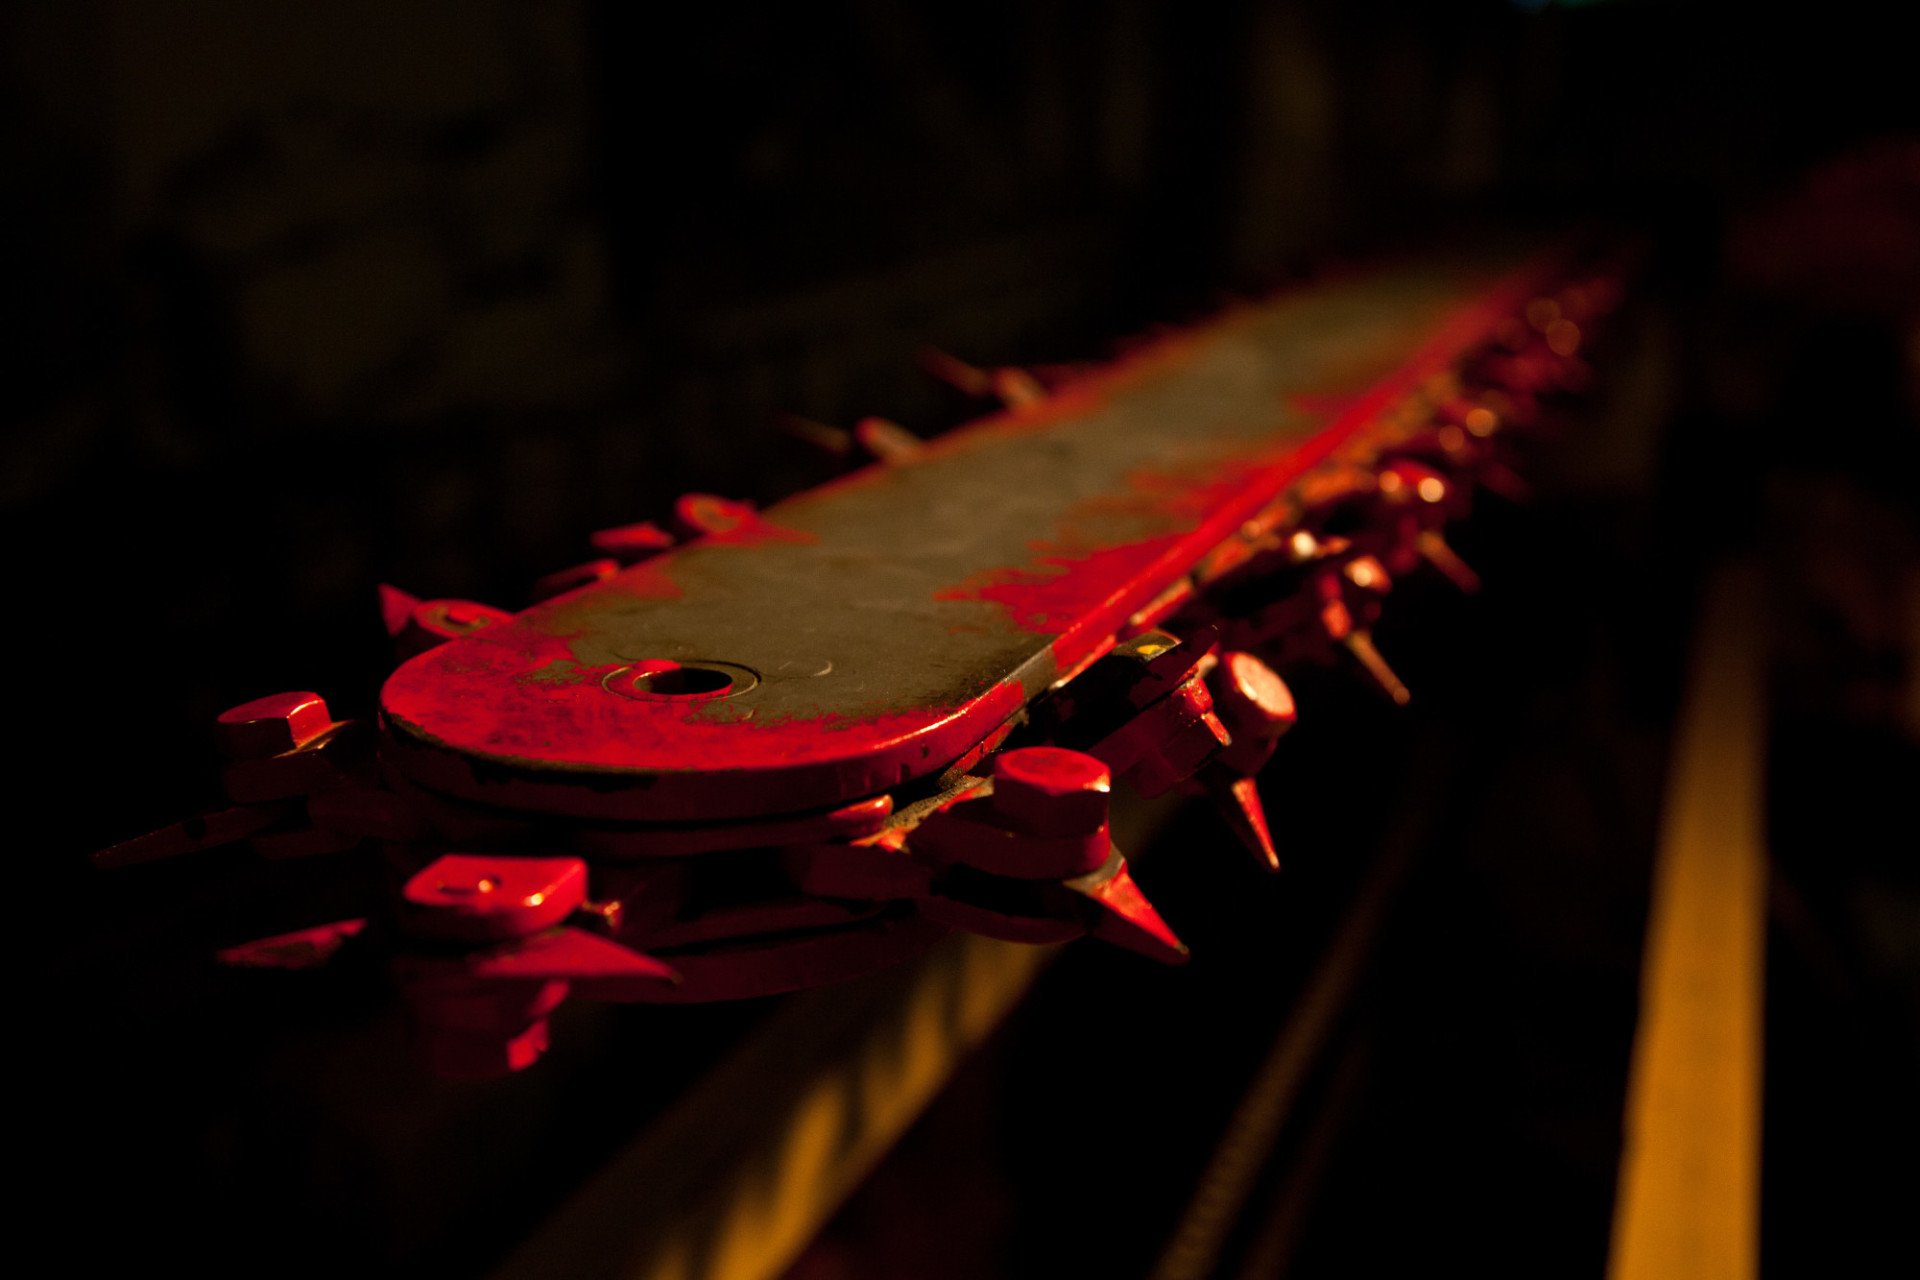 red chainsaw blade